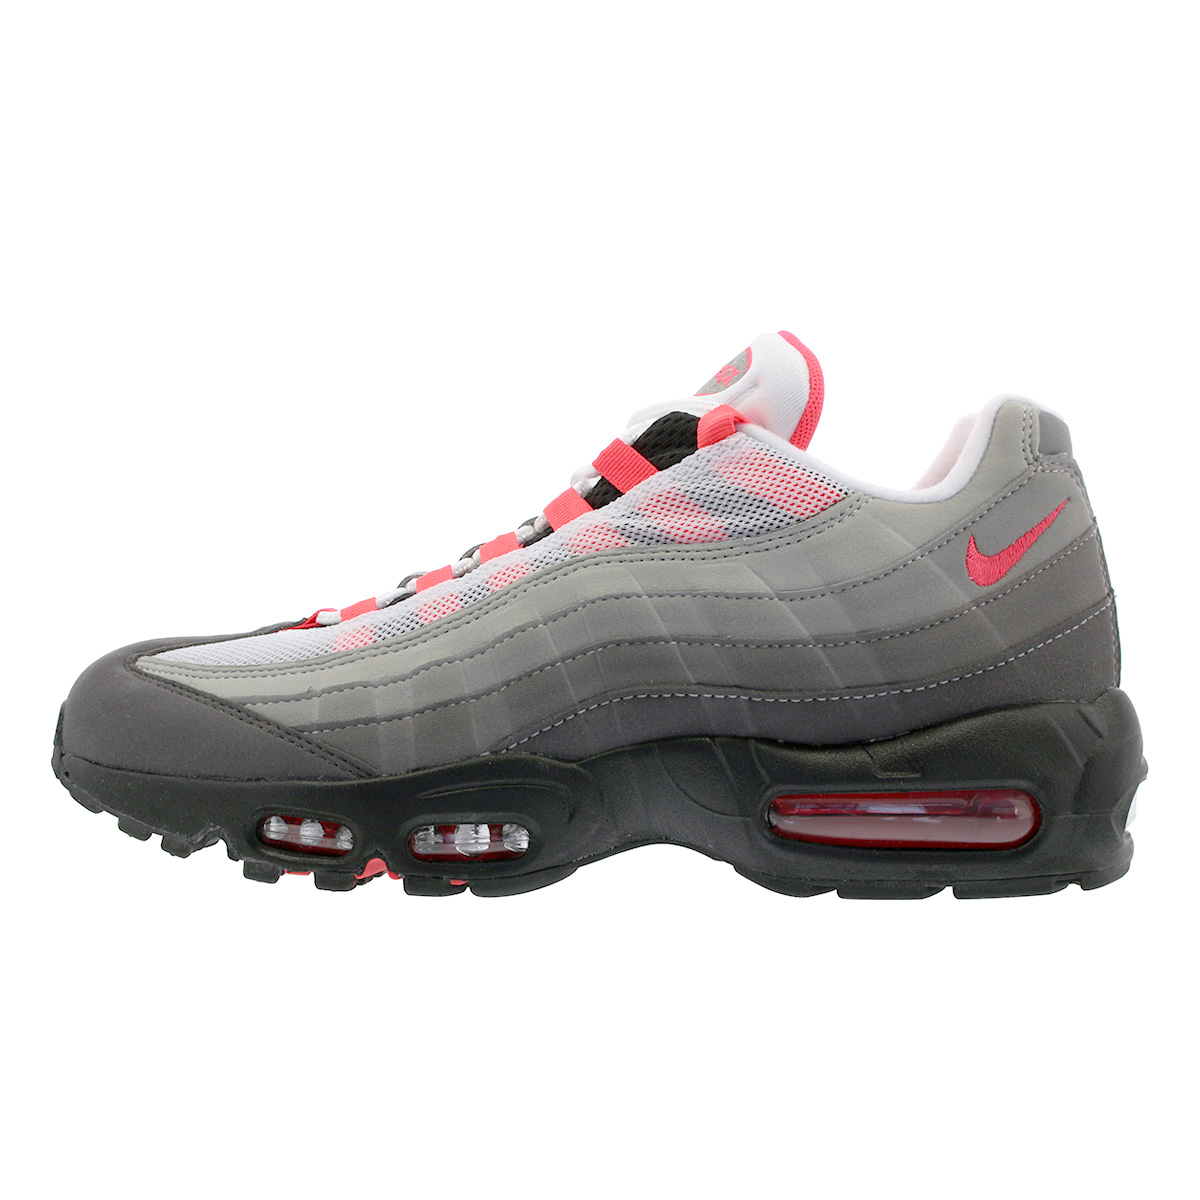 sports shoes 90cbe 3e399 ... NIKE AIR MAX 95 OG Kie Ney AMAX 95 OG WHITE SOLAR RED GRANITE ...